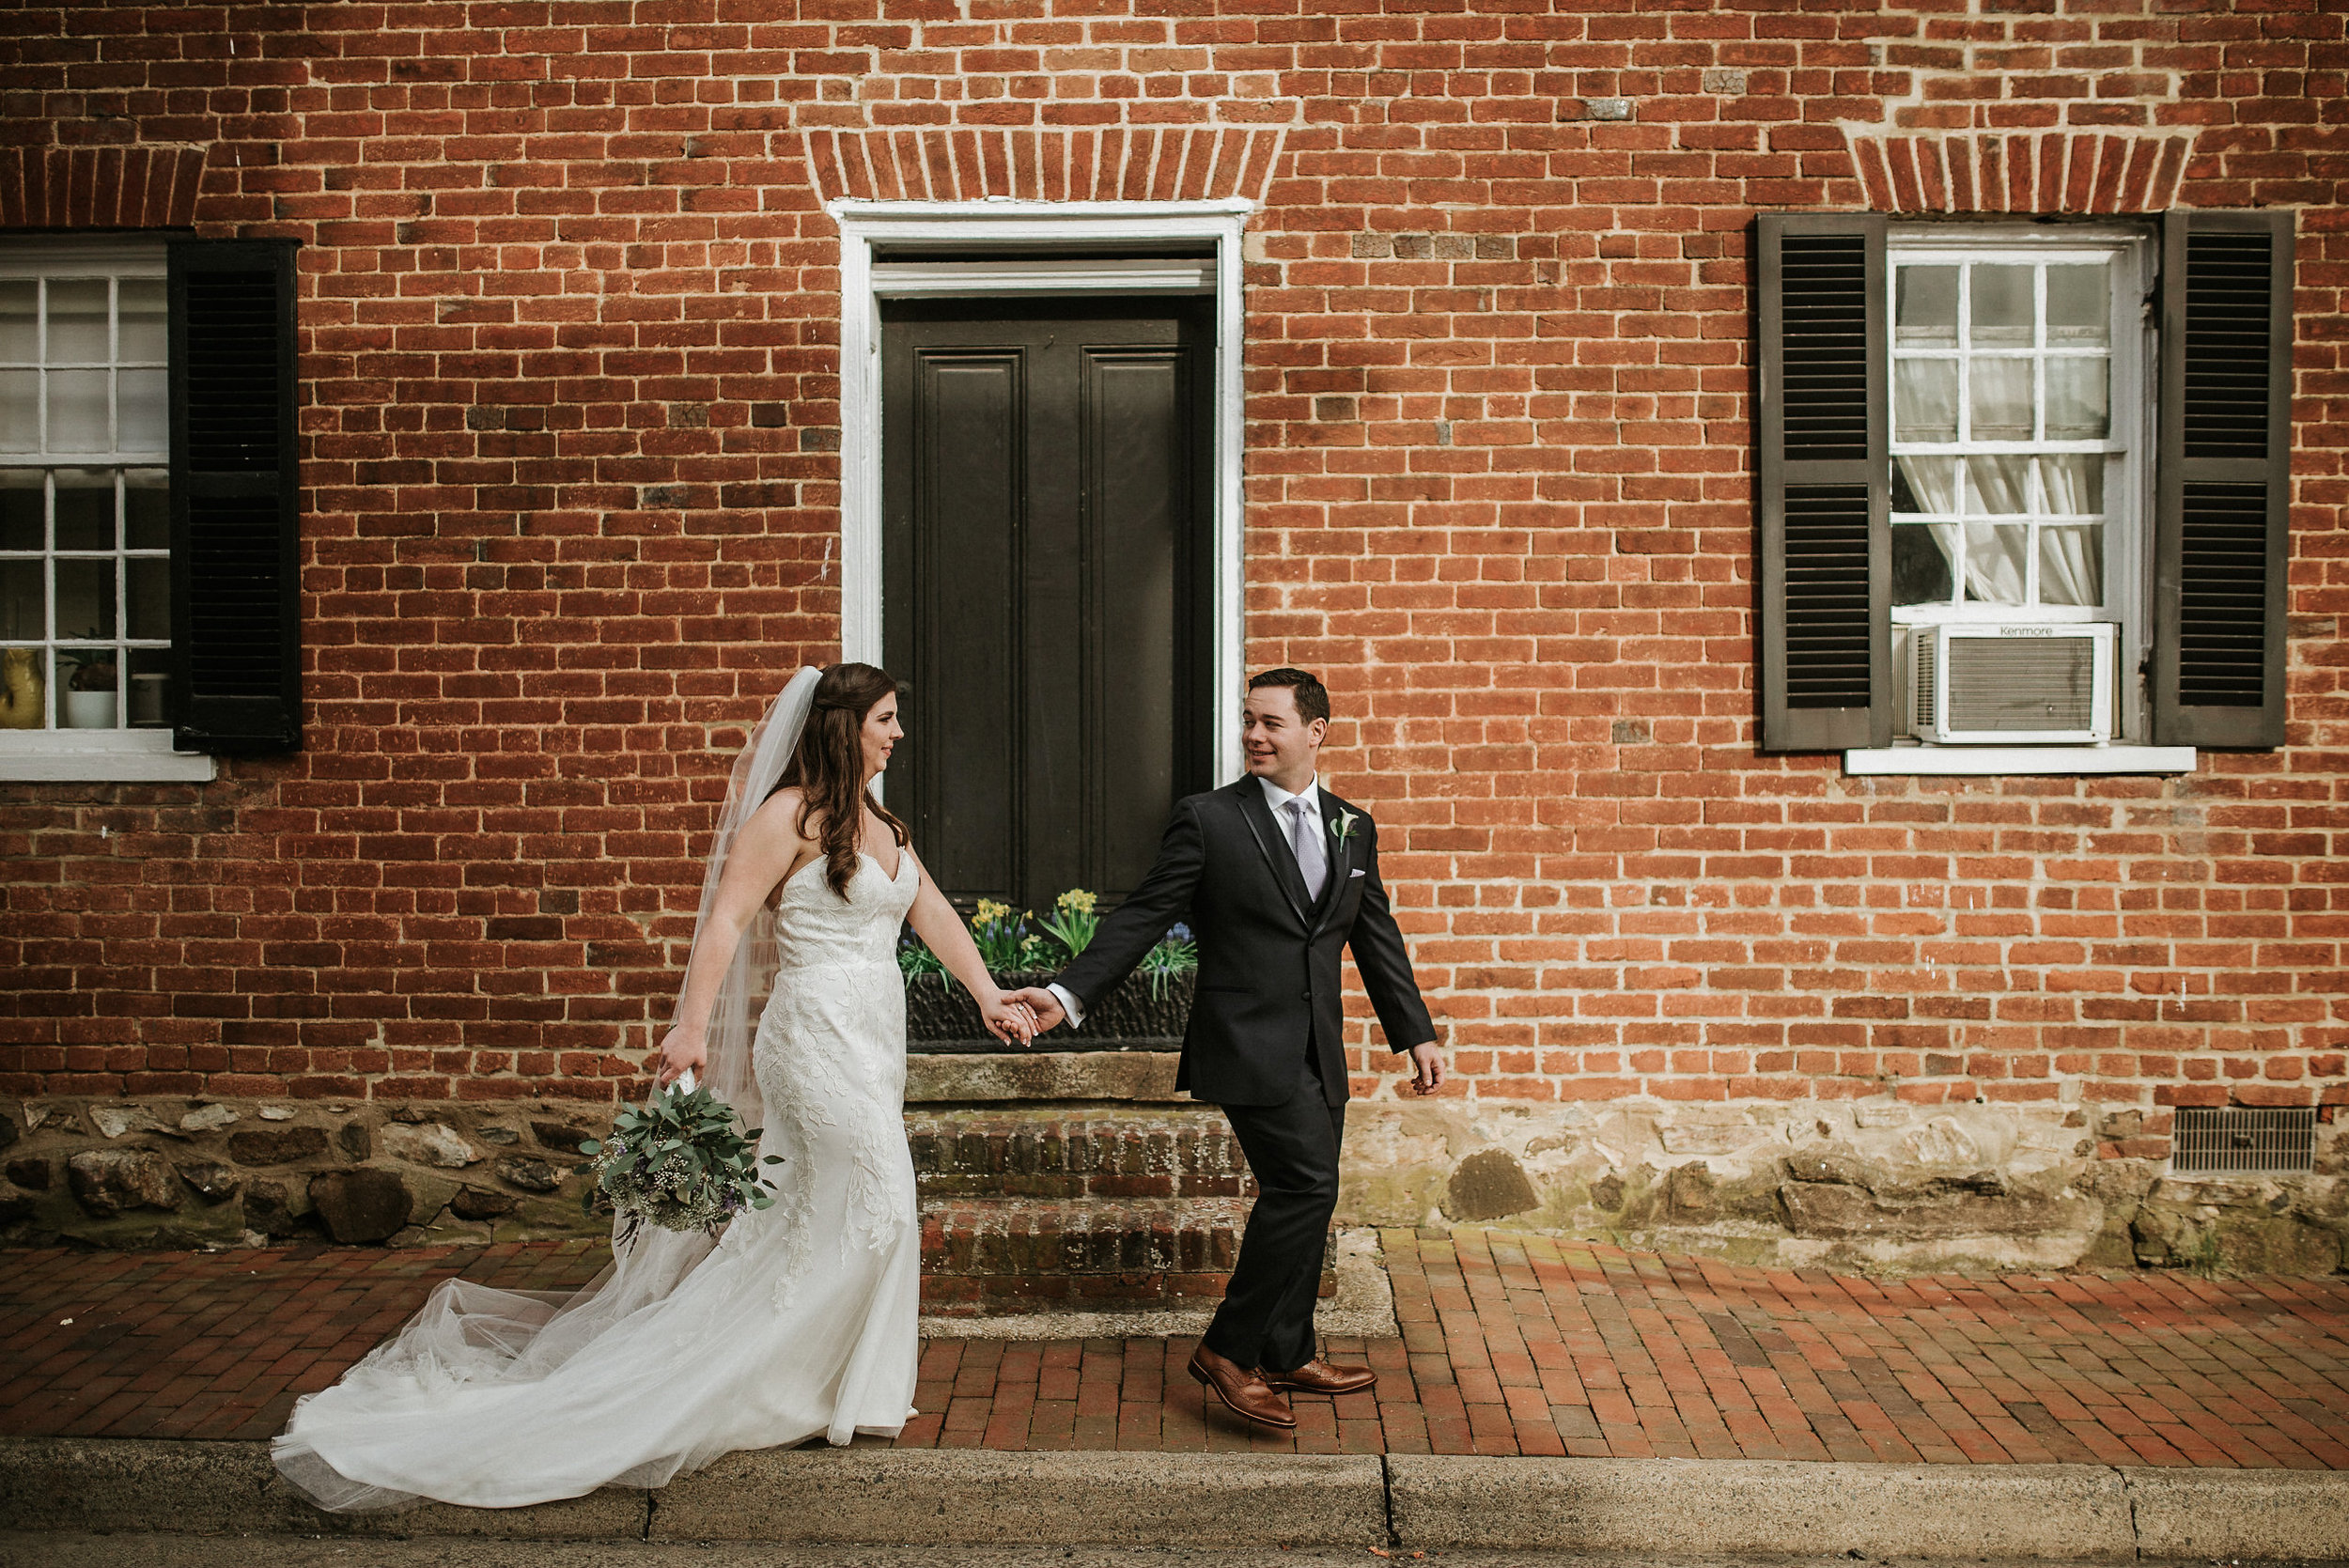 Bride and groom walking on stone sidewalk